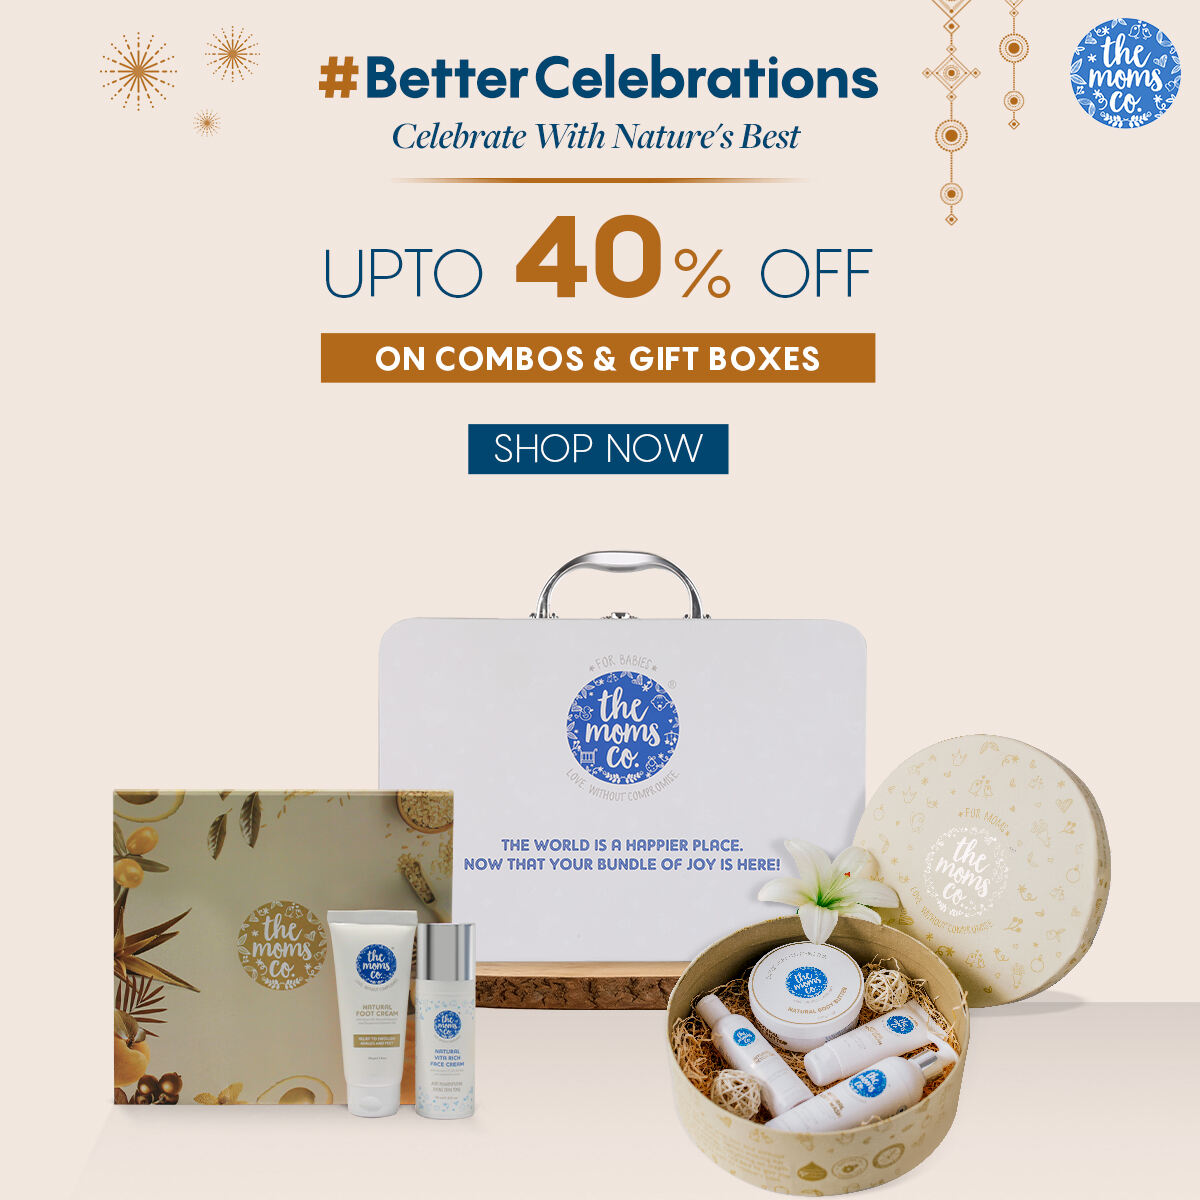 Diwali Celebrations Get upto 40 off on Combos Gift boxes.